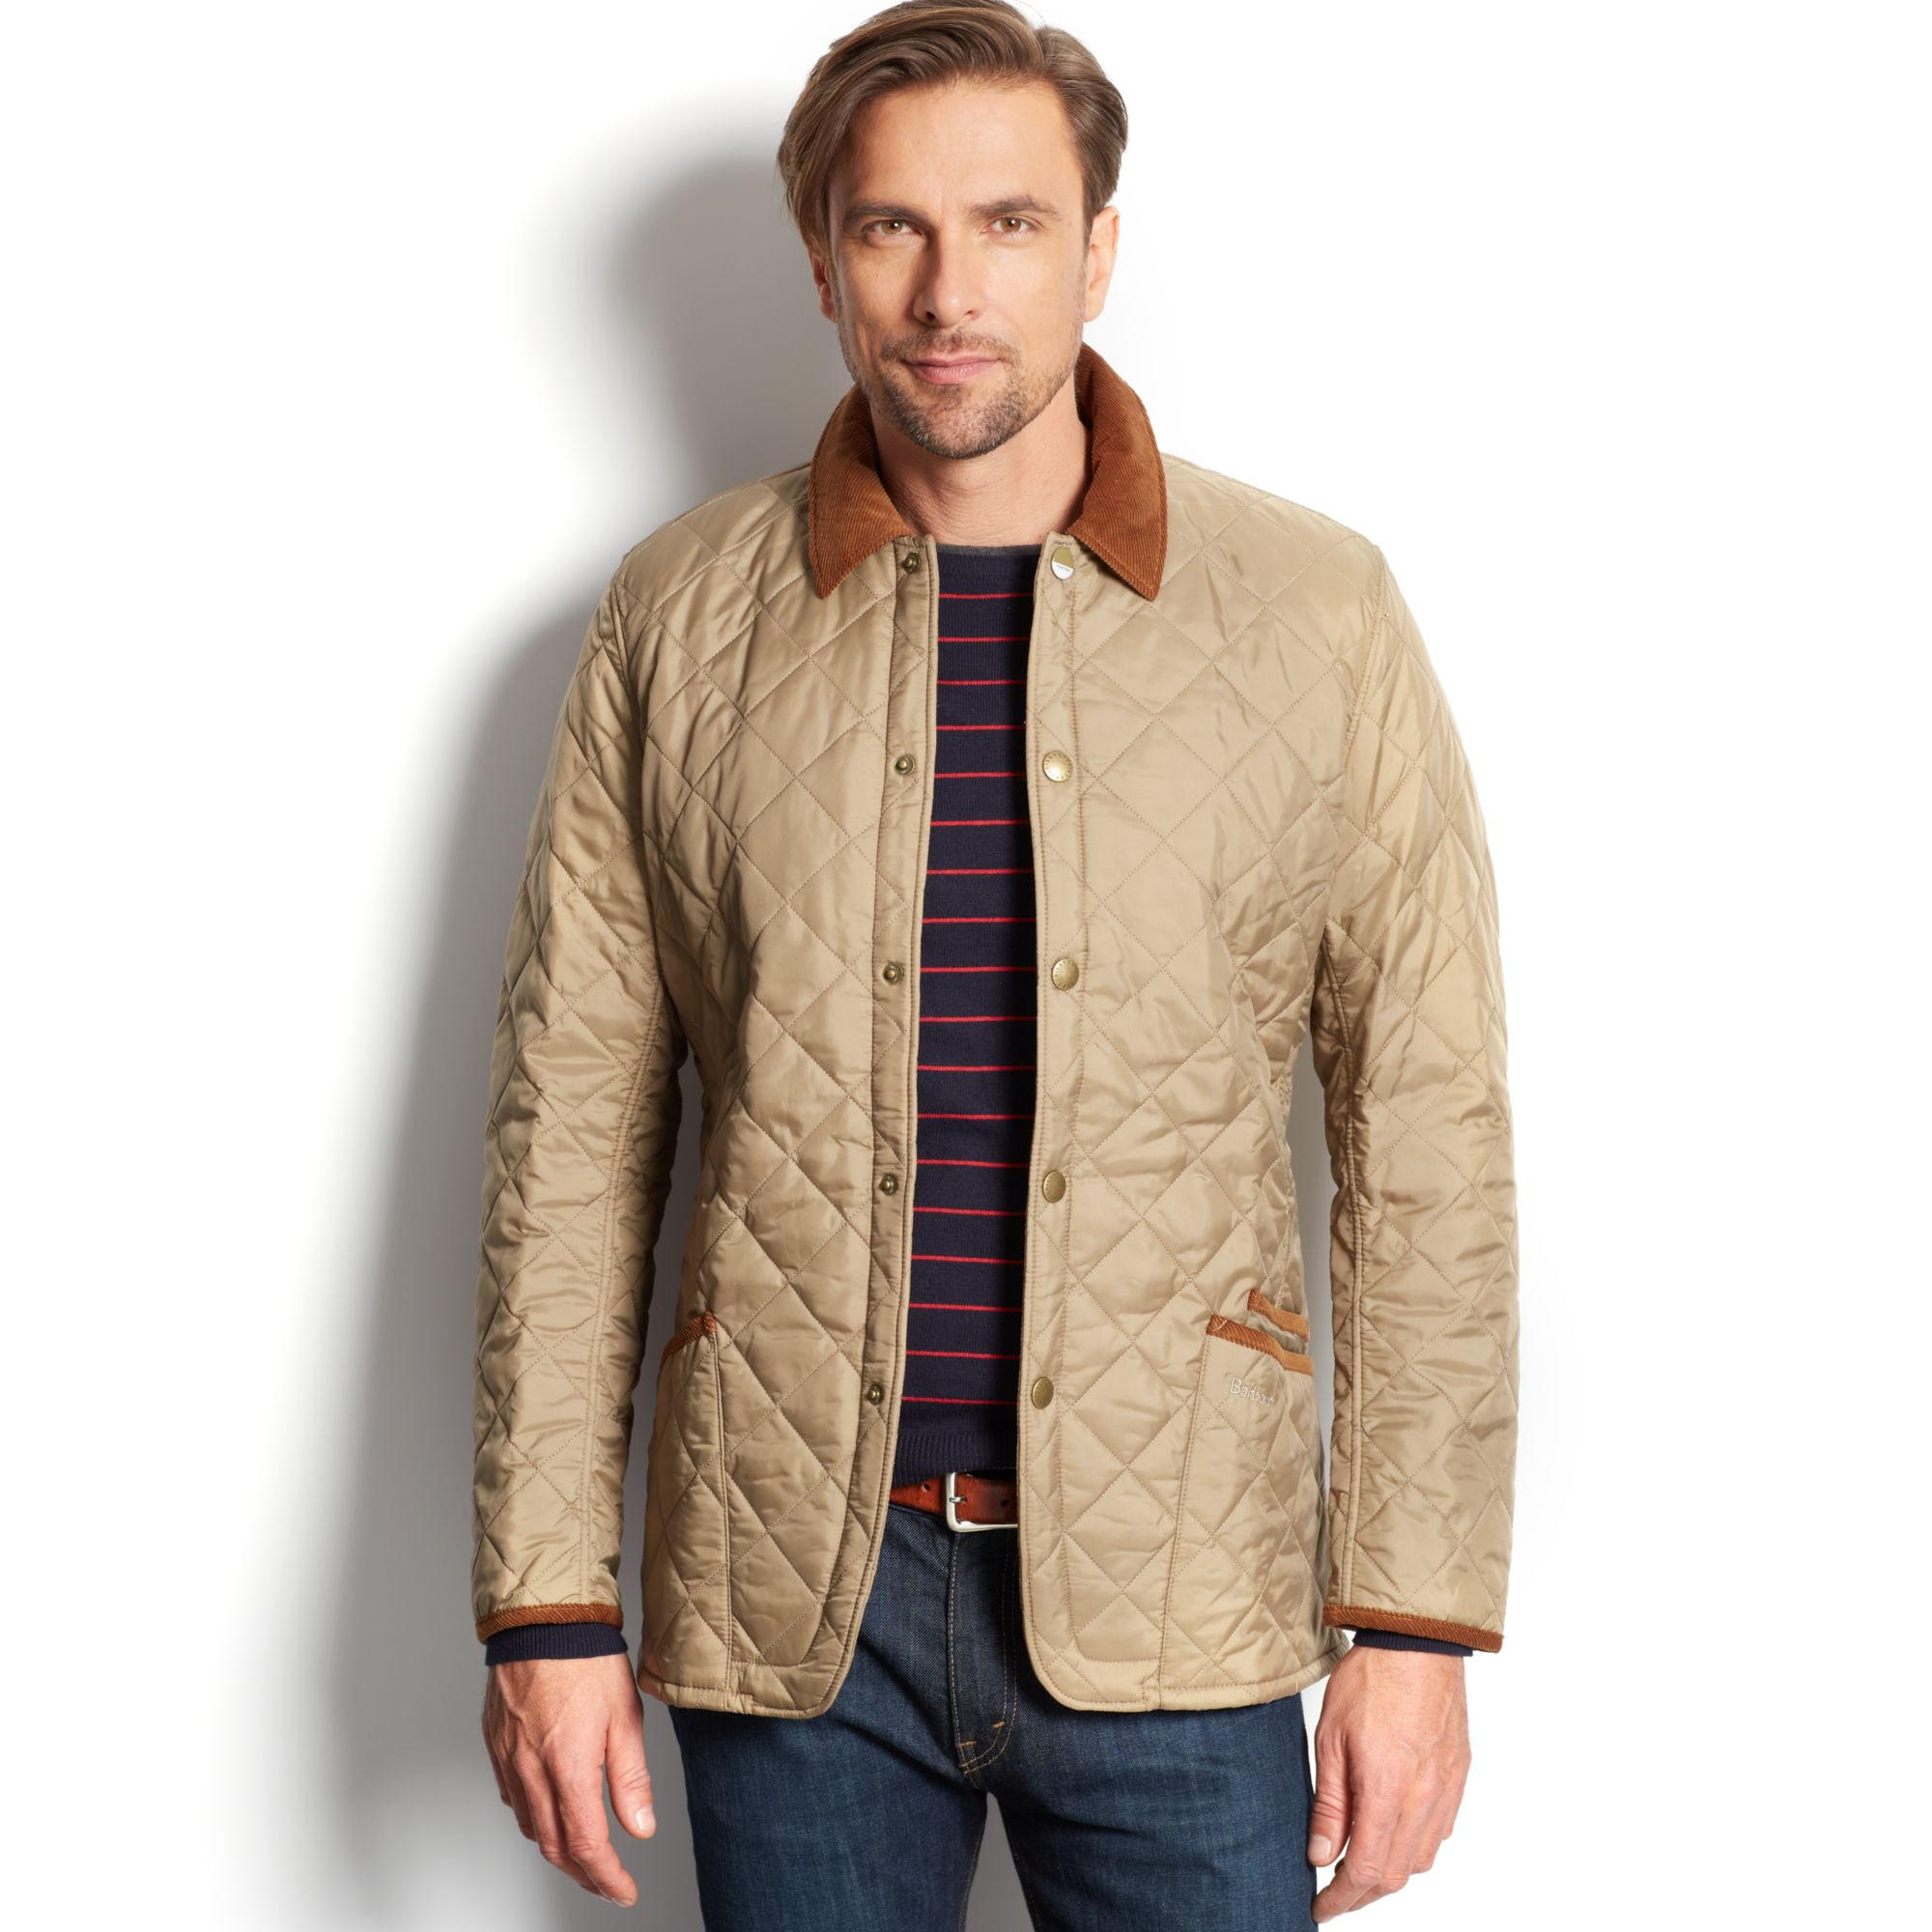 f quilt tshirts quilted asp off discount mens share buy armani jacket